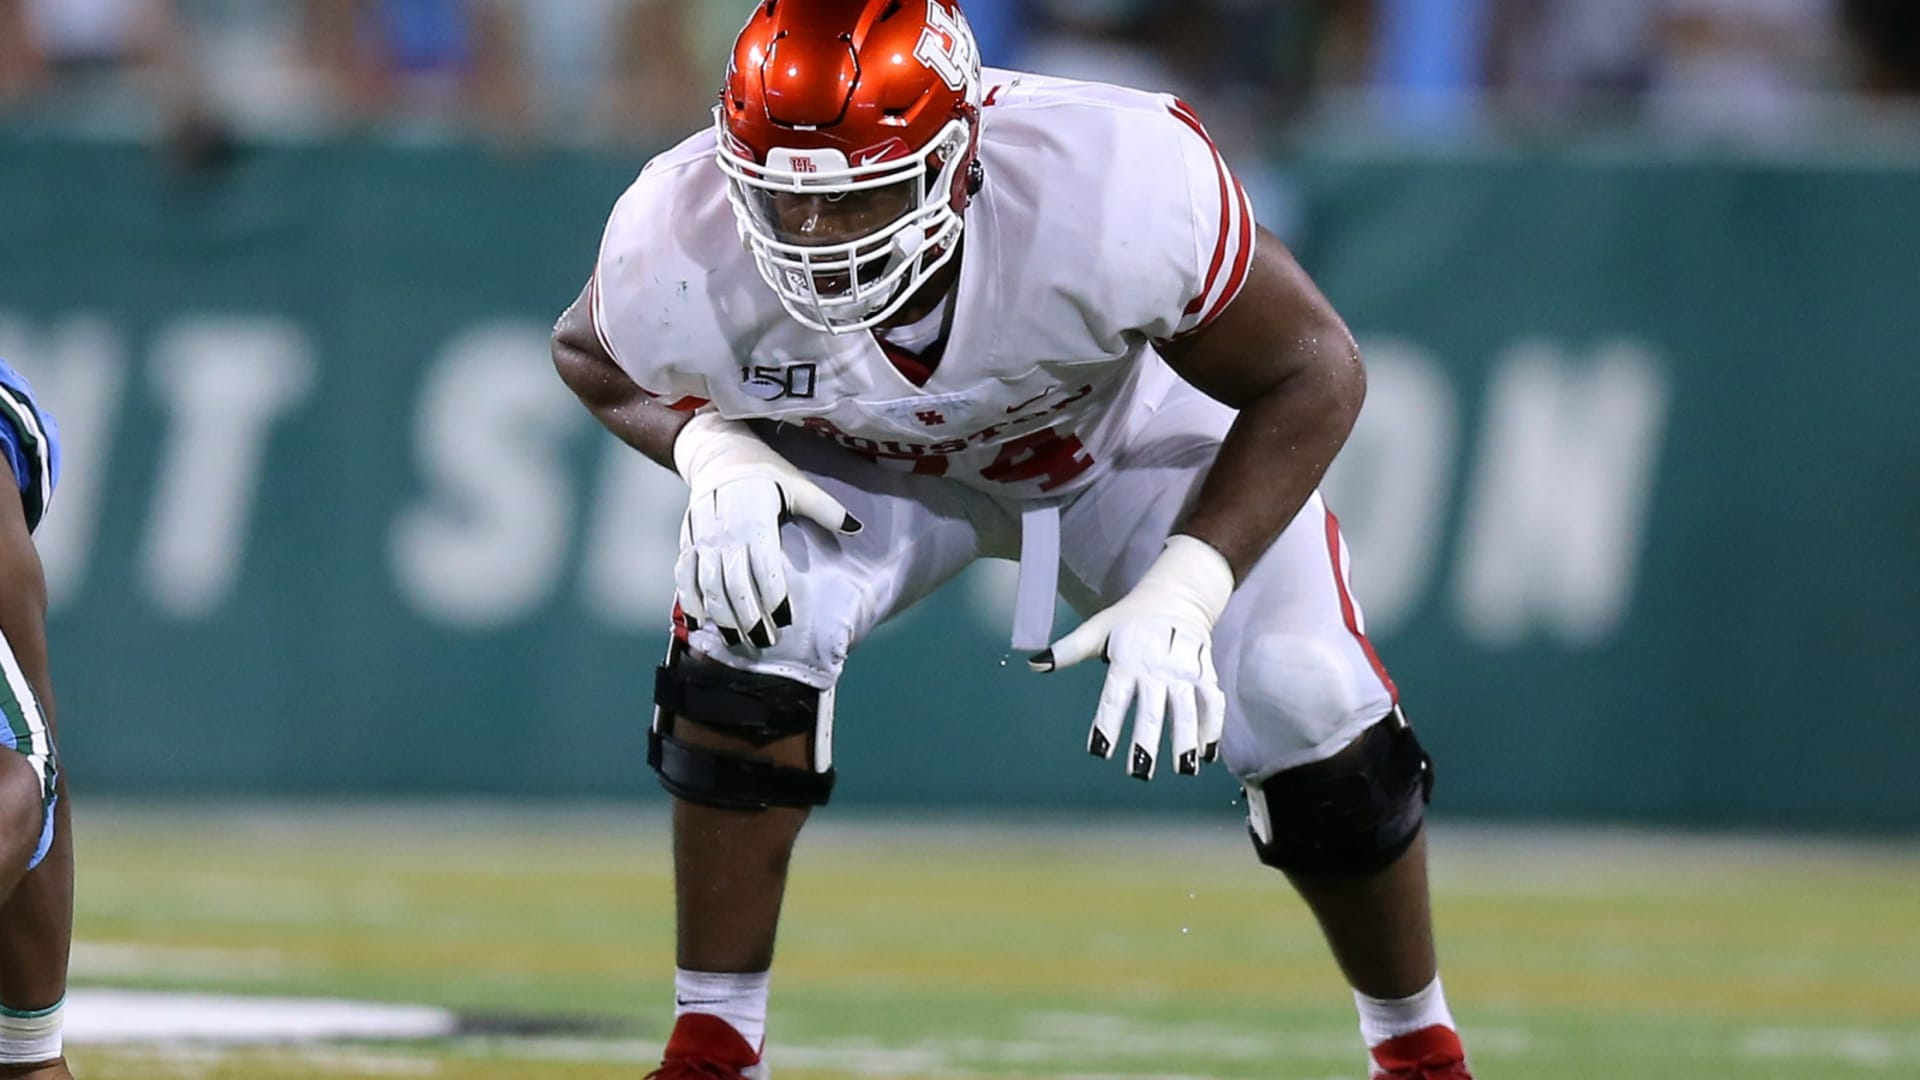 Tracking 2020 NFL Draft Prospects Cleveland Browns have met with